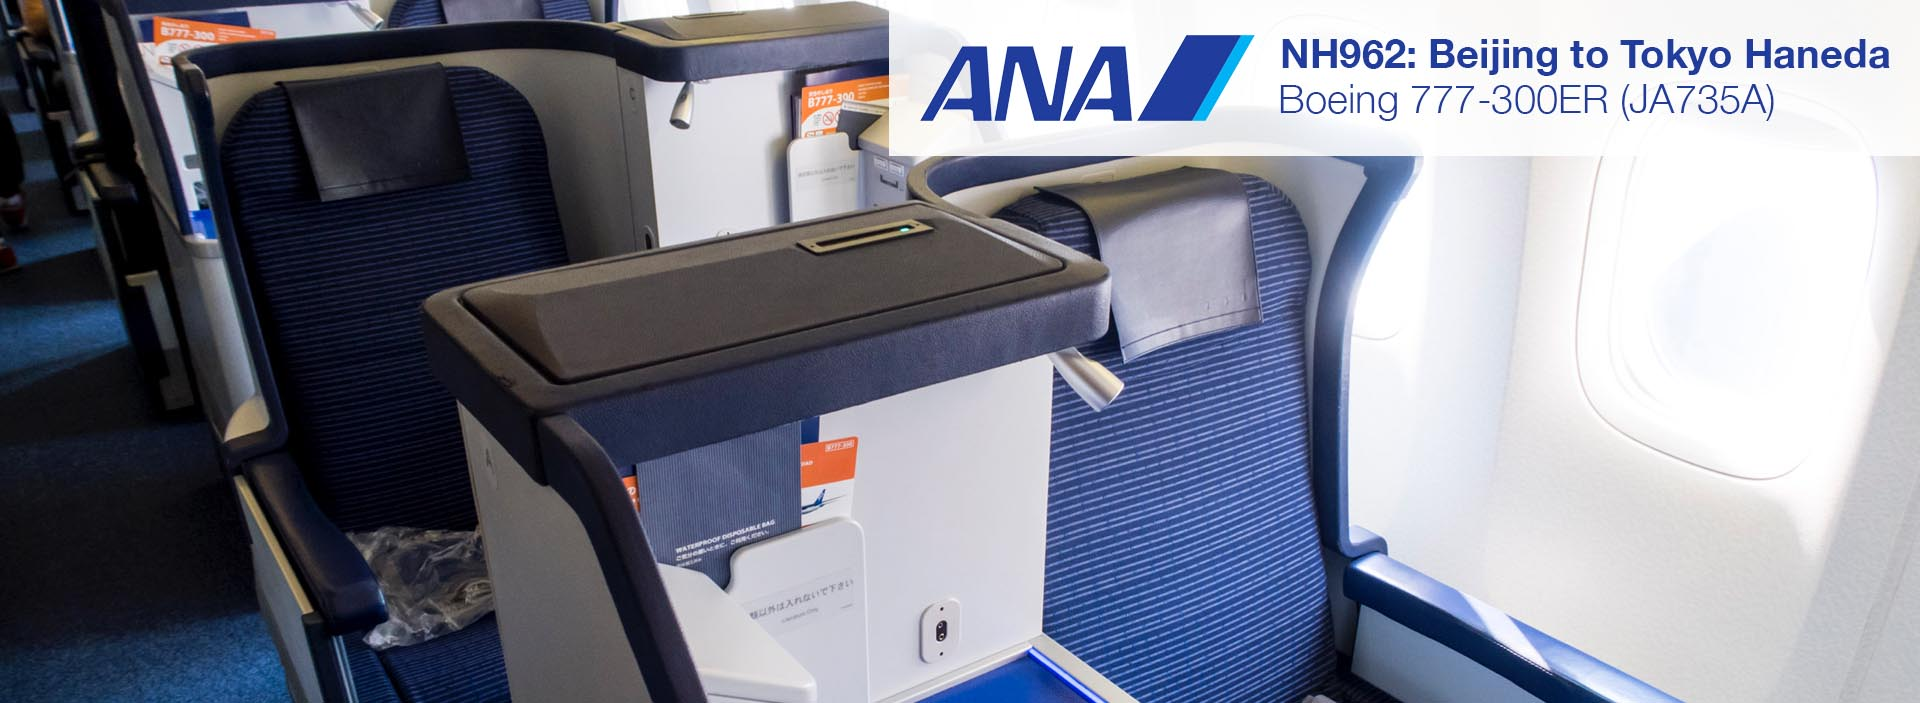 Flight Review: ANA 777-300ER Business Class from Beijing to Tokyo Haneda